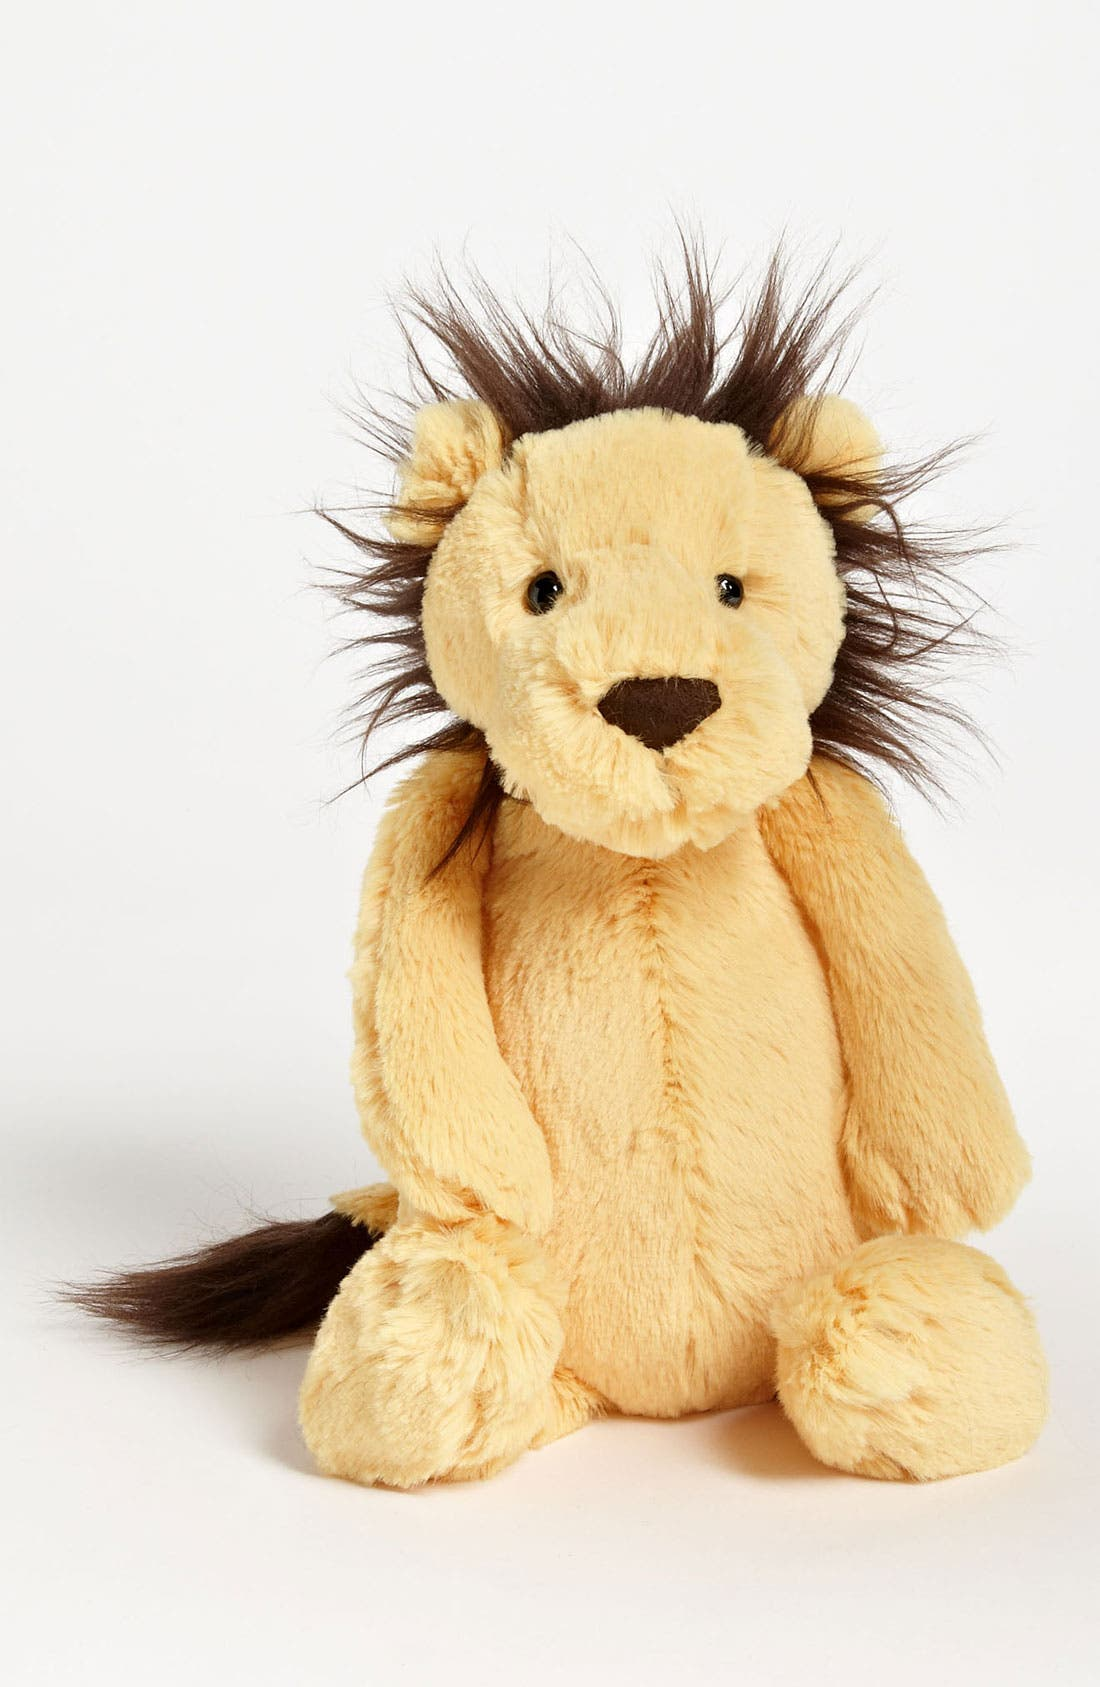 Main Image - Jellycat 'Bashful Lion' Stuffed Animal